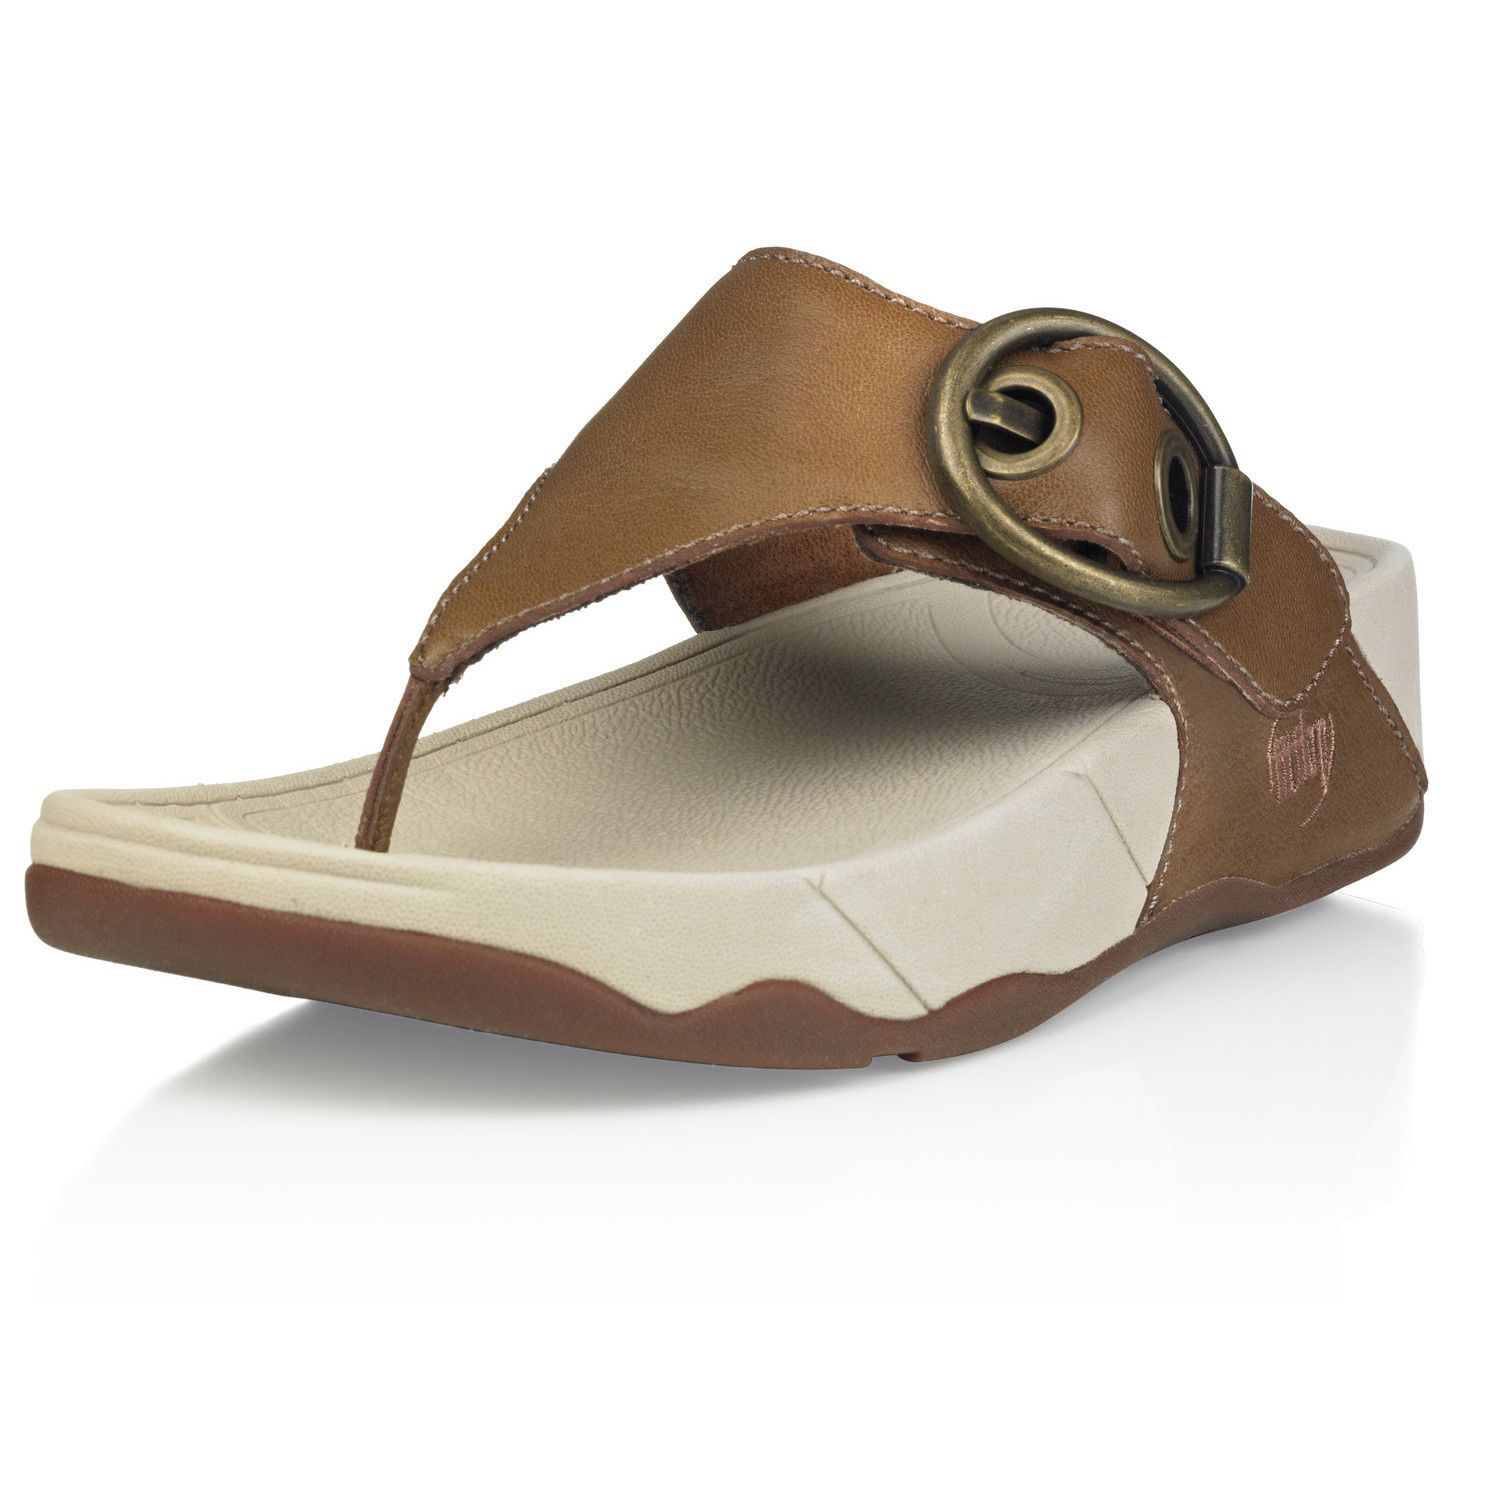 Fitflop hooper leather sandal with images fitflop